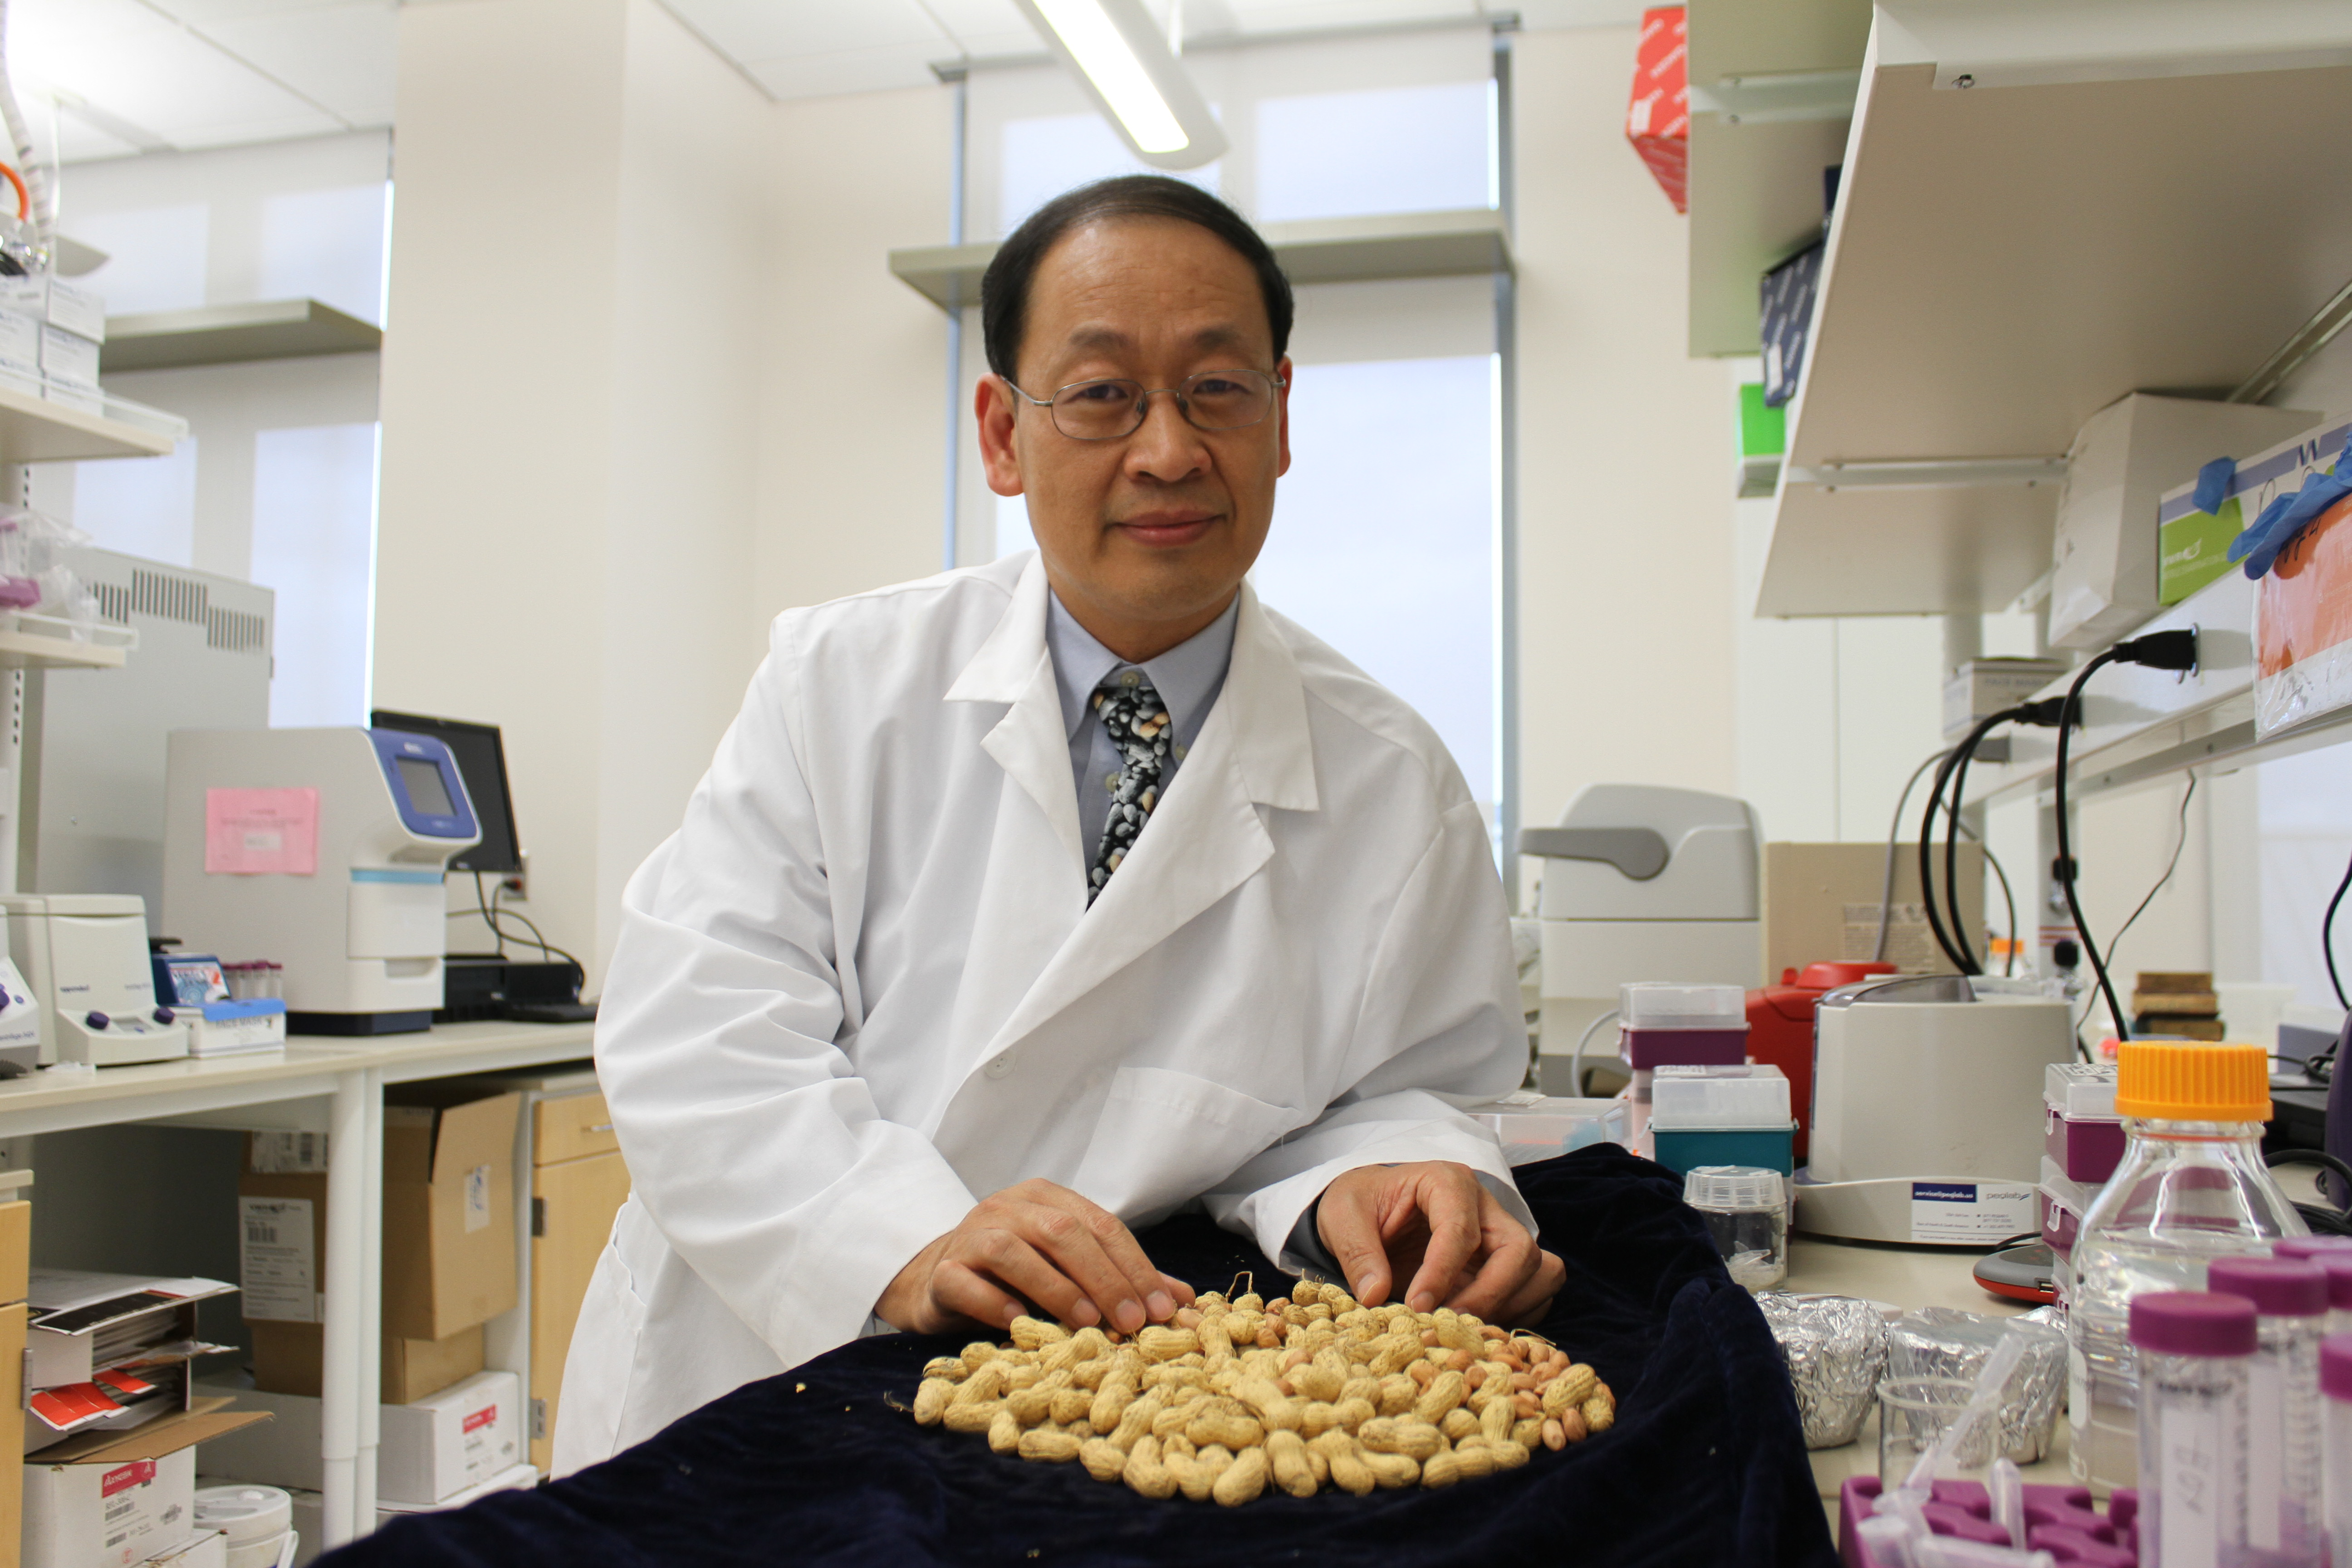 Professor Charles Chen in his lab, displaying peanuts